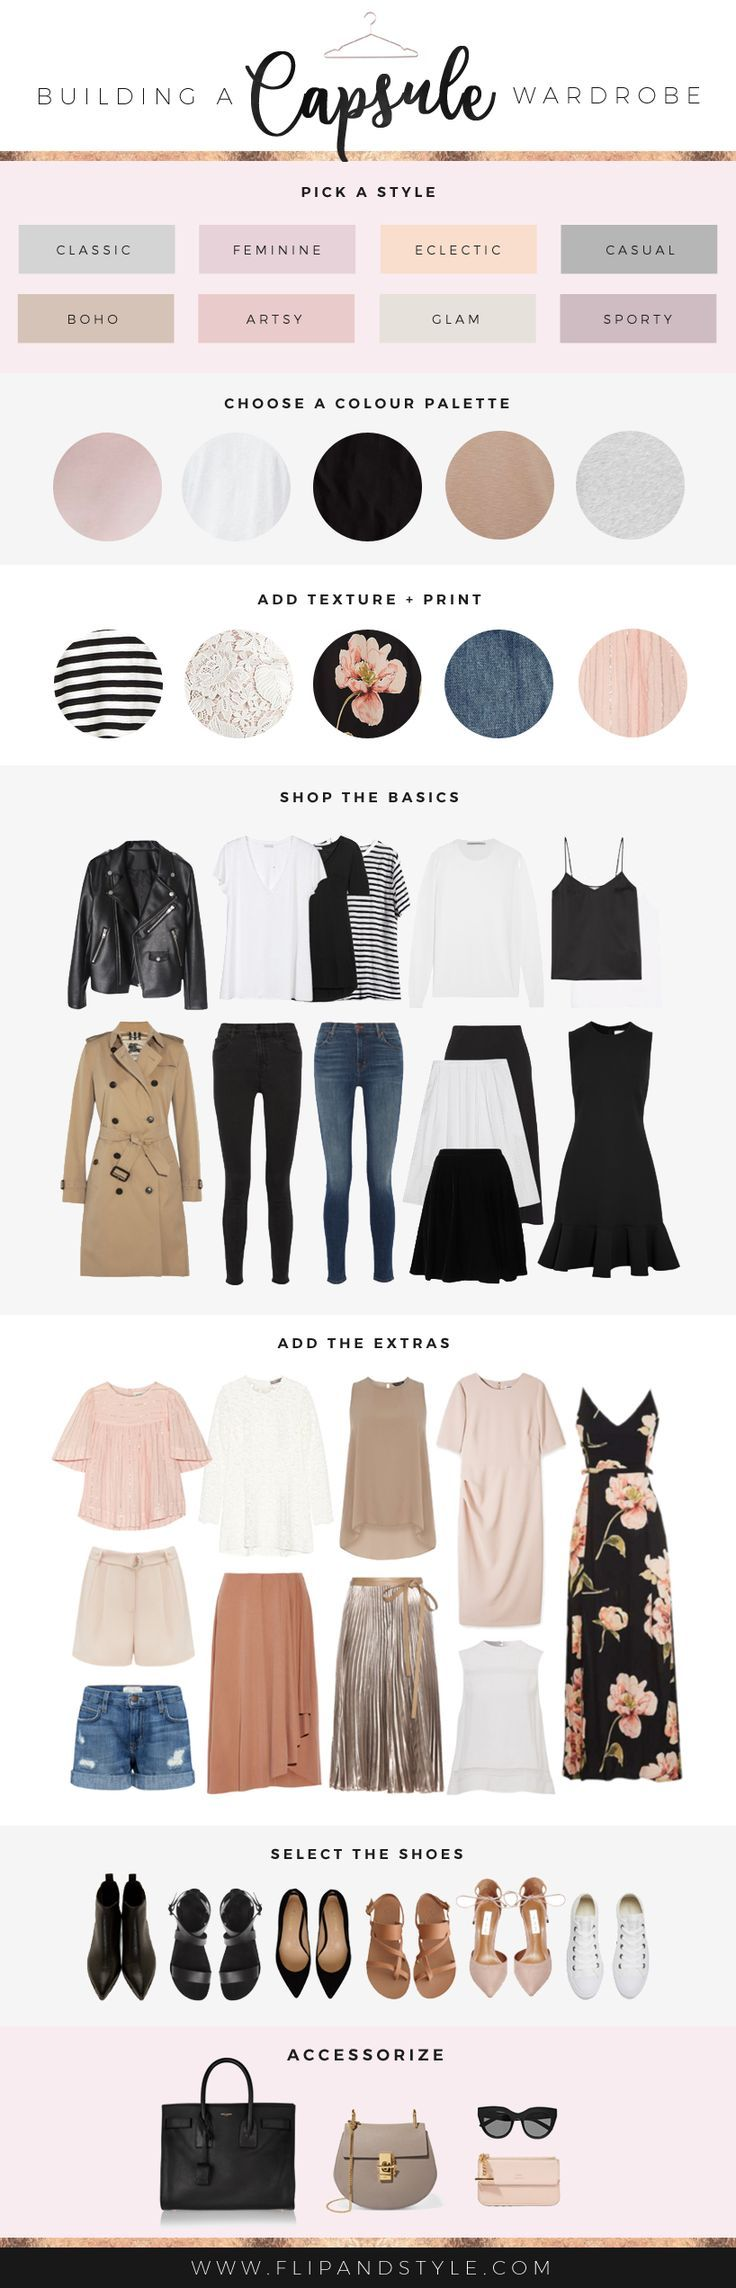 How to build a capsule wardrobe | Style essentials, outfits and staples that will last! |